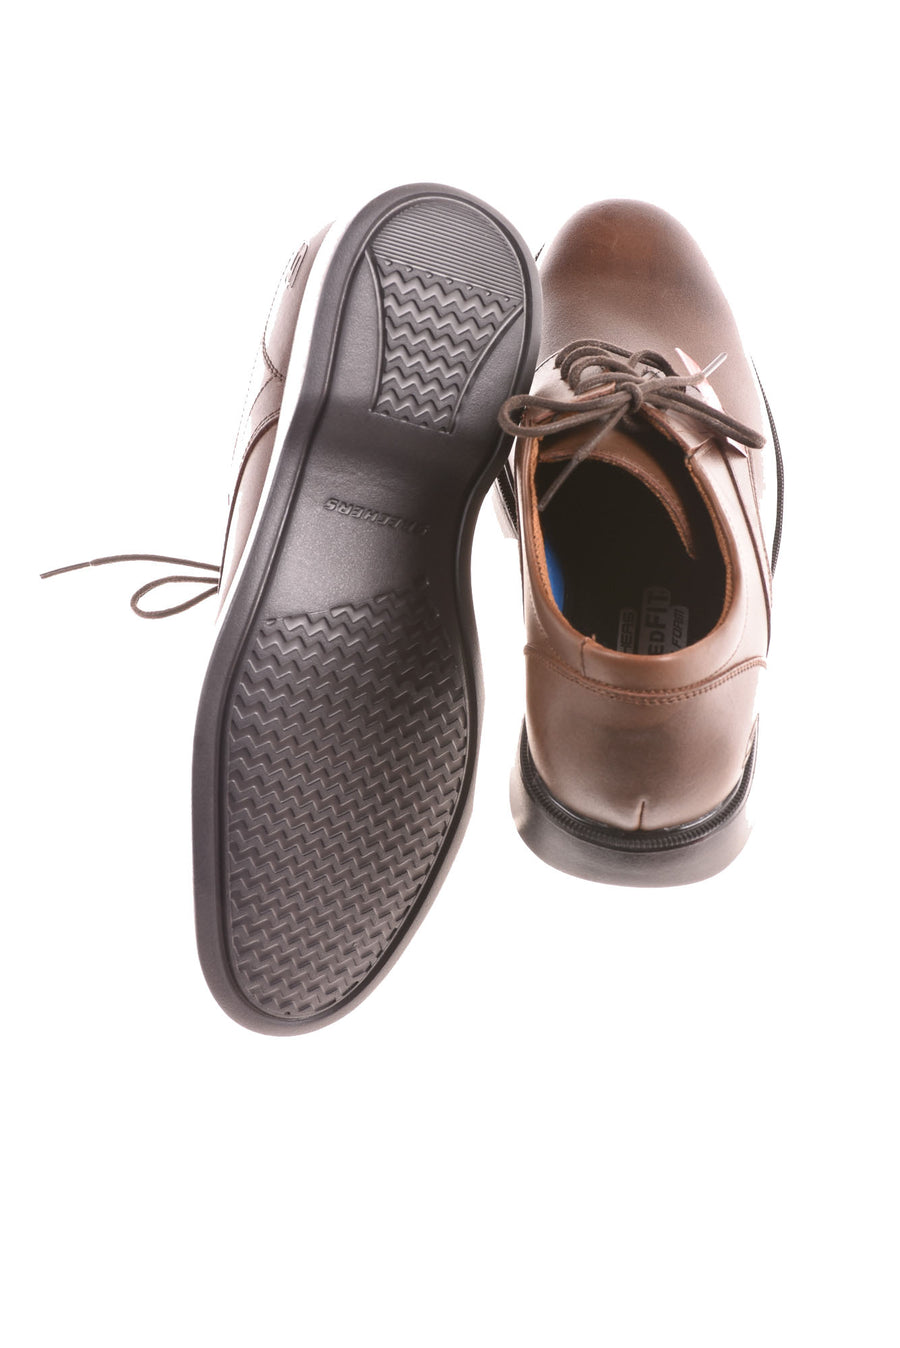 Men's Shoes By Skechers